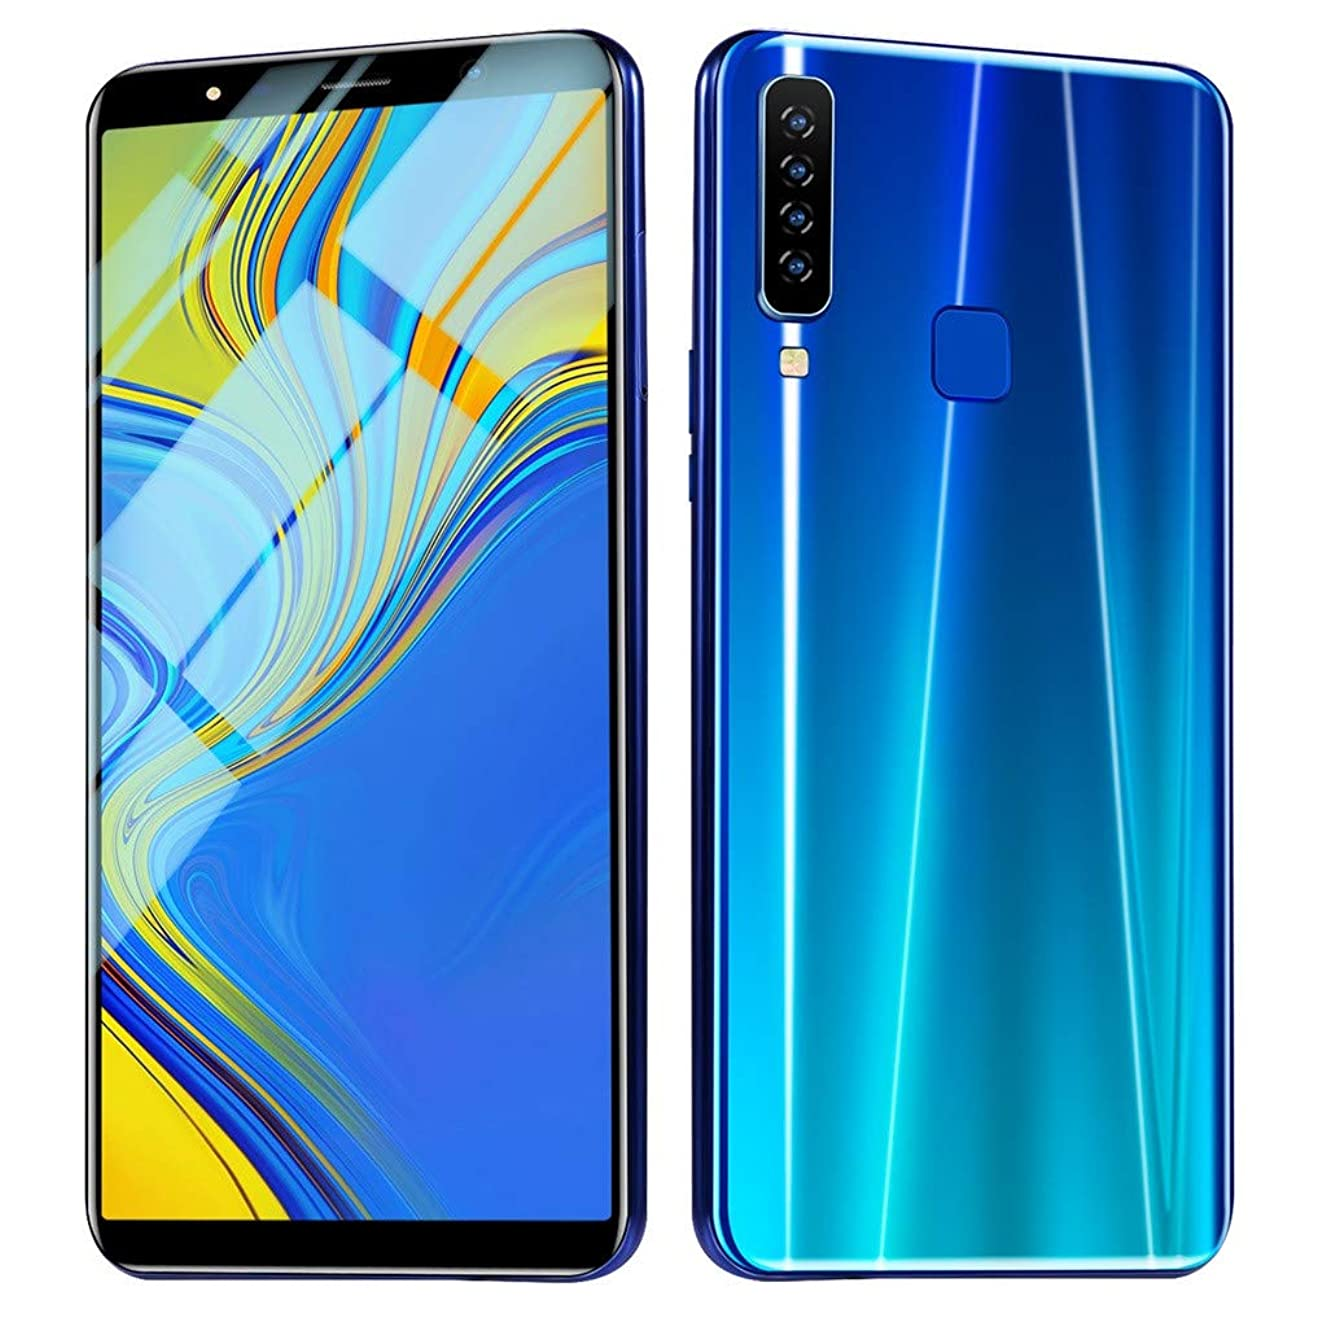 Newest! 6.1 Inch A9 Android 8.1 Unlocked Smartphone 3G LTE Eight Cores 1GB / 16GB LCD Full Touchscreen 1660x1080 Dual SIM Slots Cellphone Unlocked Mobile Phone with Quad Cameras GPS Bluetooth (Blue)